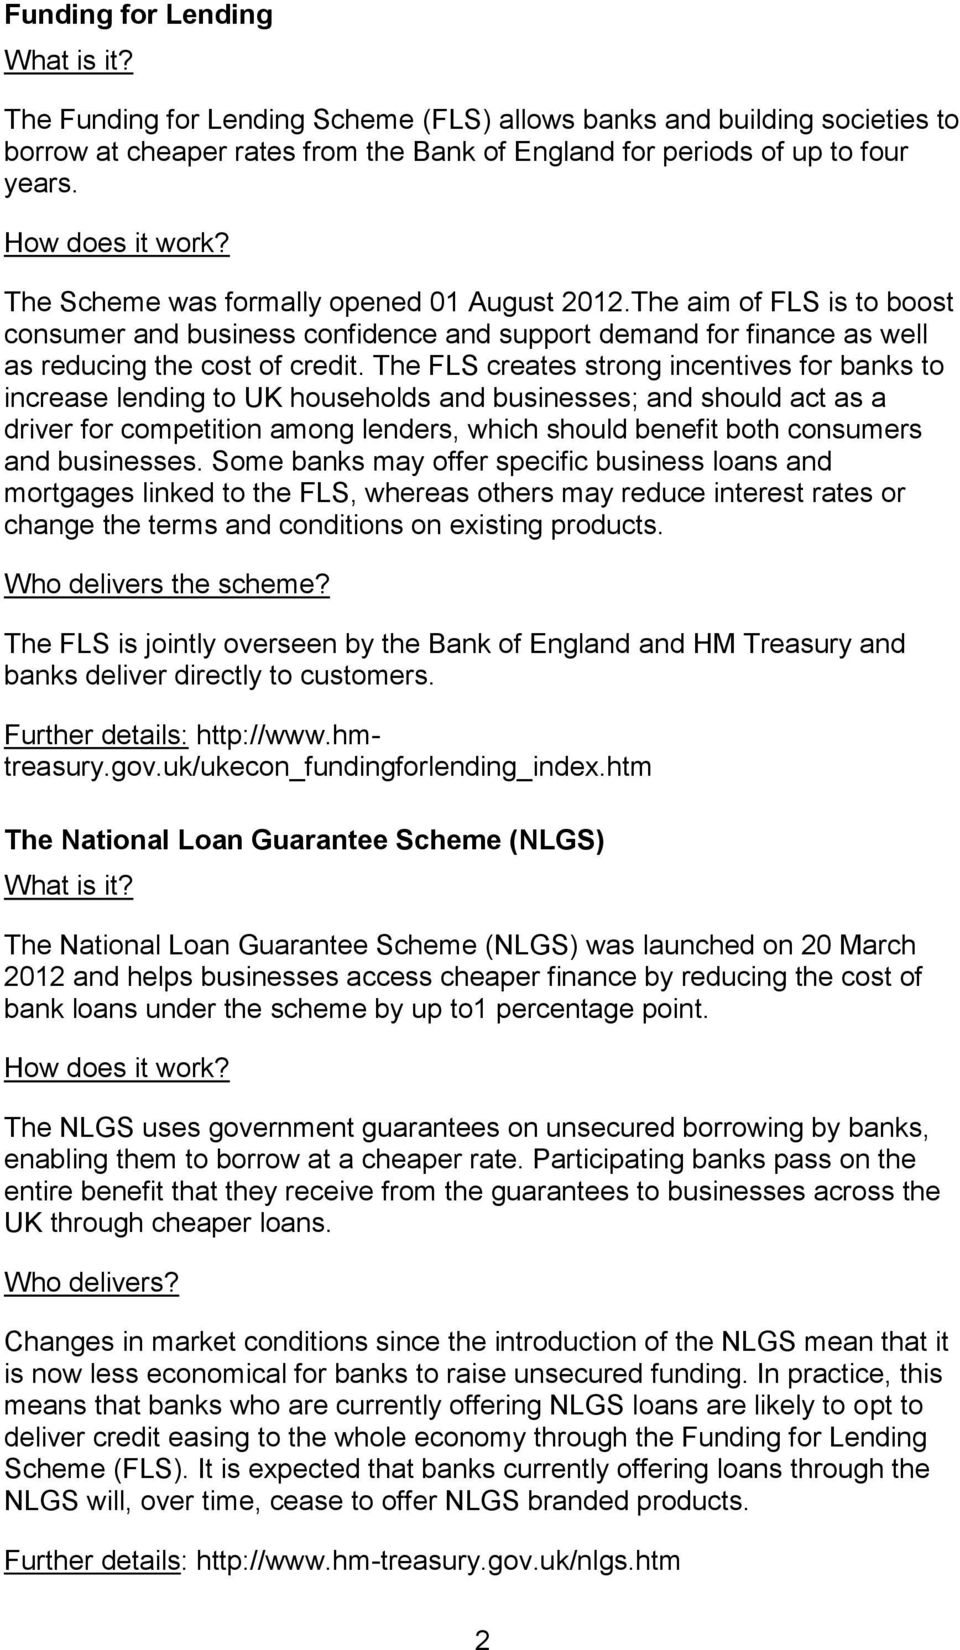 The FLS creates strong incentives for banks to increase lending to UK households and businesses; and should act as a driver for competition among lenders, which should benefit both consumers and